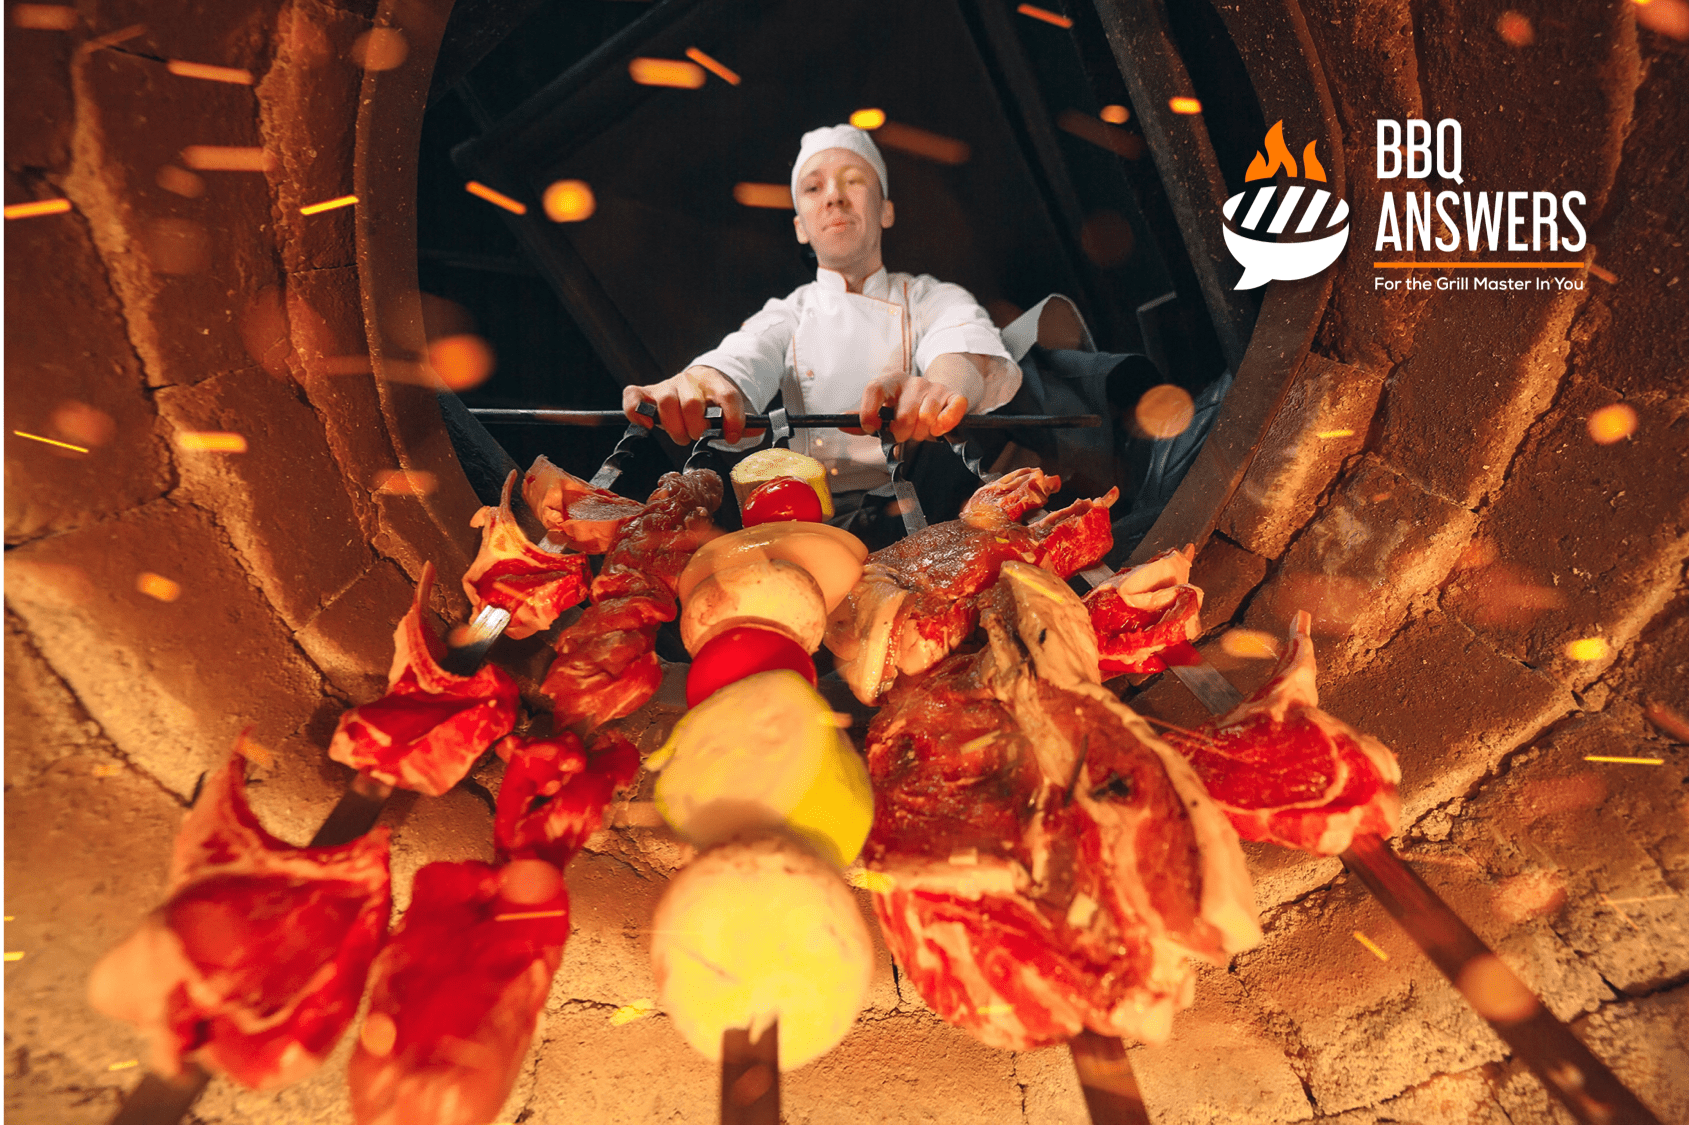 The Art of Tandoori-style Cooking – Indian BBQ